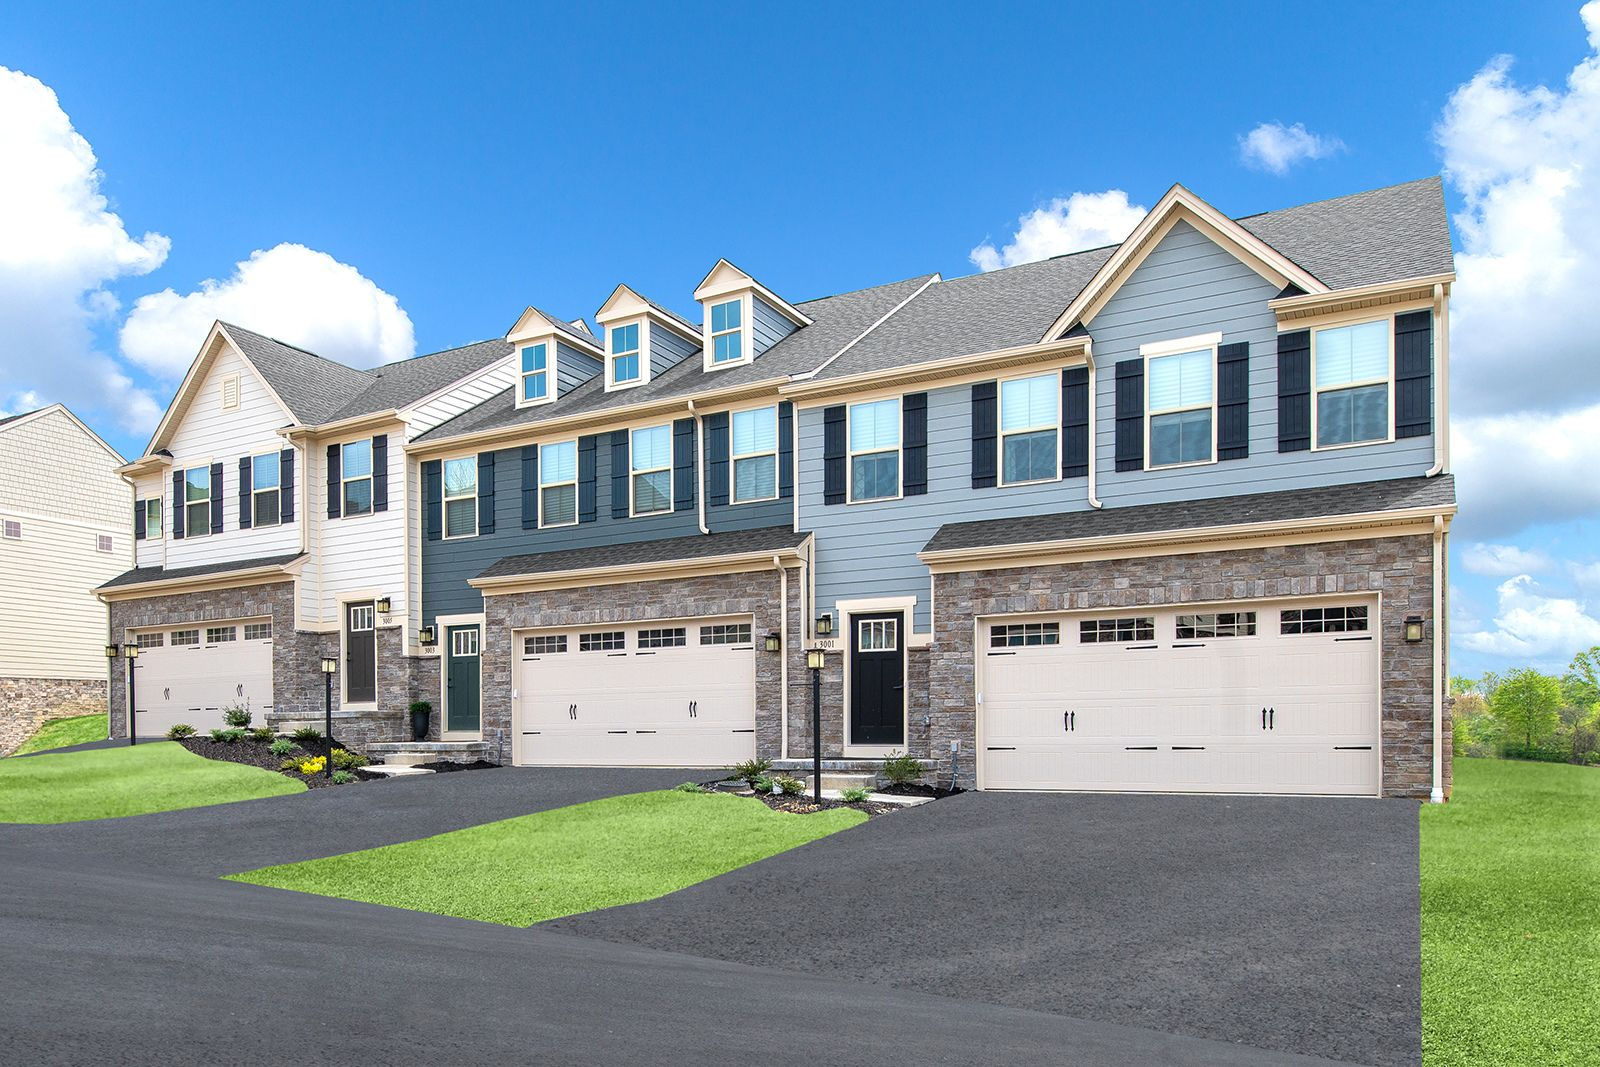 Welcome home to The Townhomes at Blackthorne Estates:The lowest-priced new homes in Penn Township. Golf course views & low-maintenance lifestyle, near Rts22 & 130, w/ low Westmoreland taxes.Join the VIP list for updates on the new homesites.